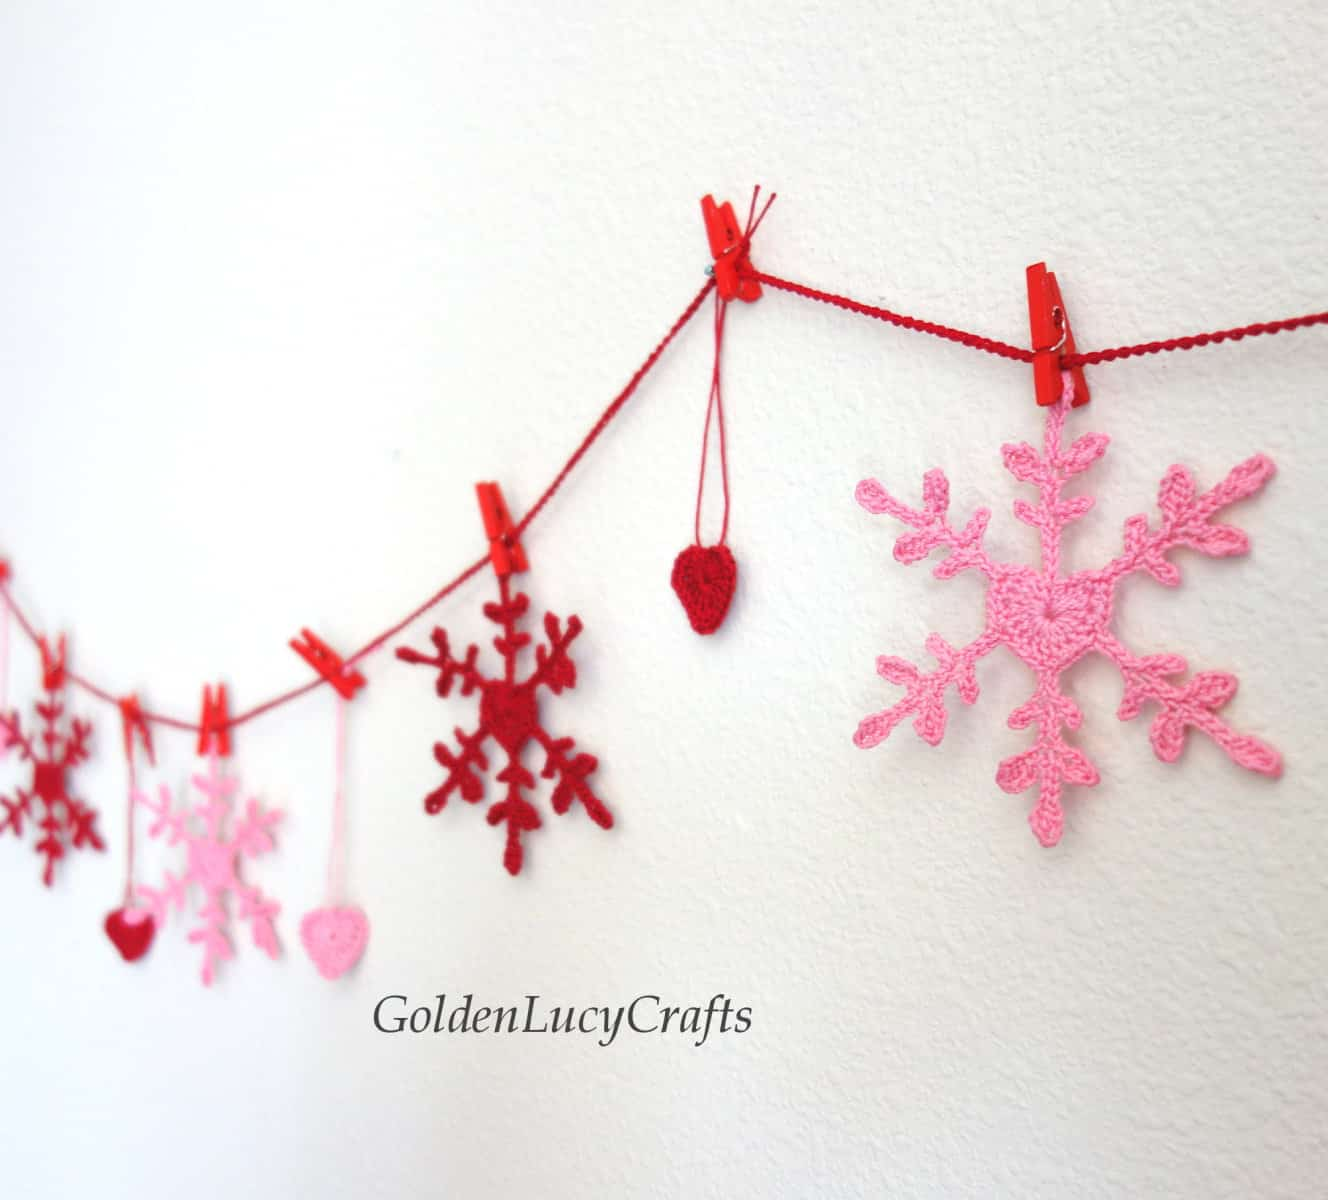 Crochet Valentine's Day bunting hanging on the wall.